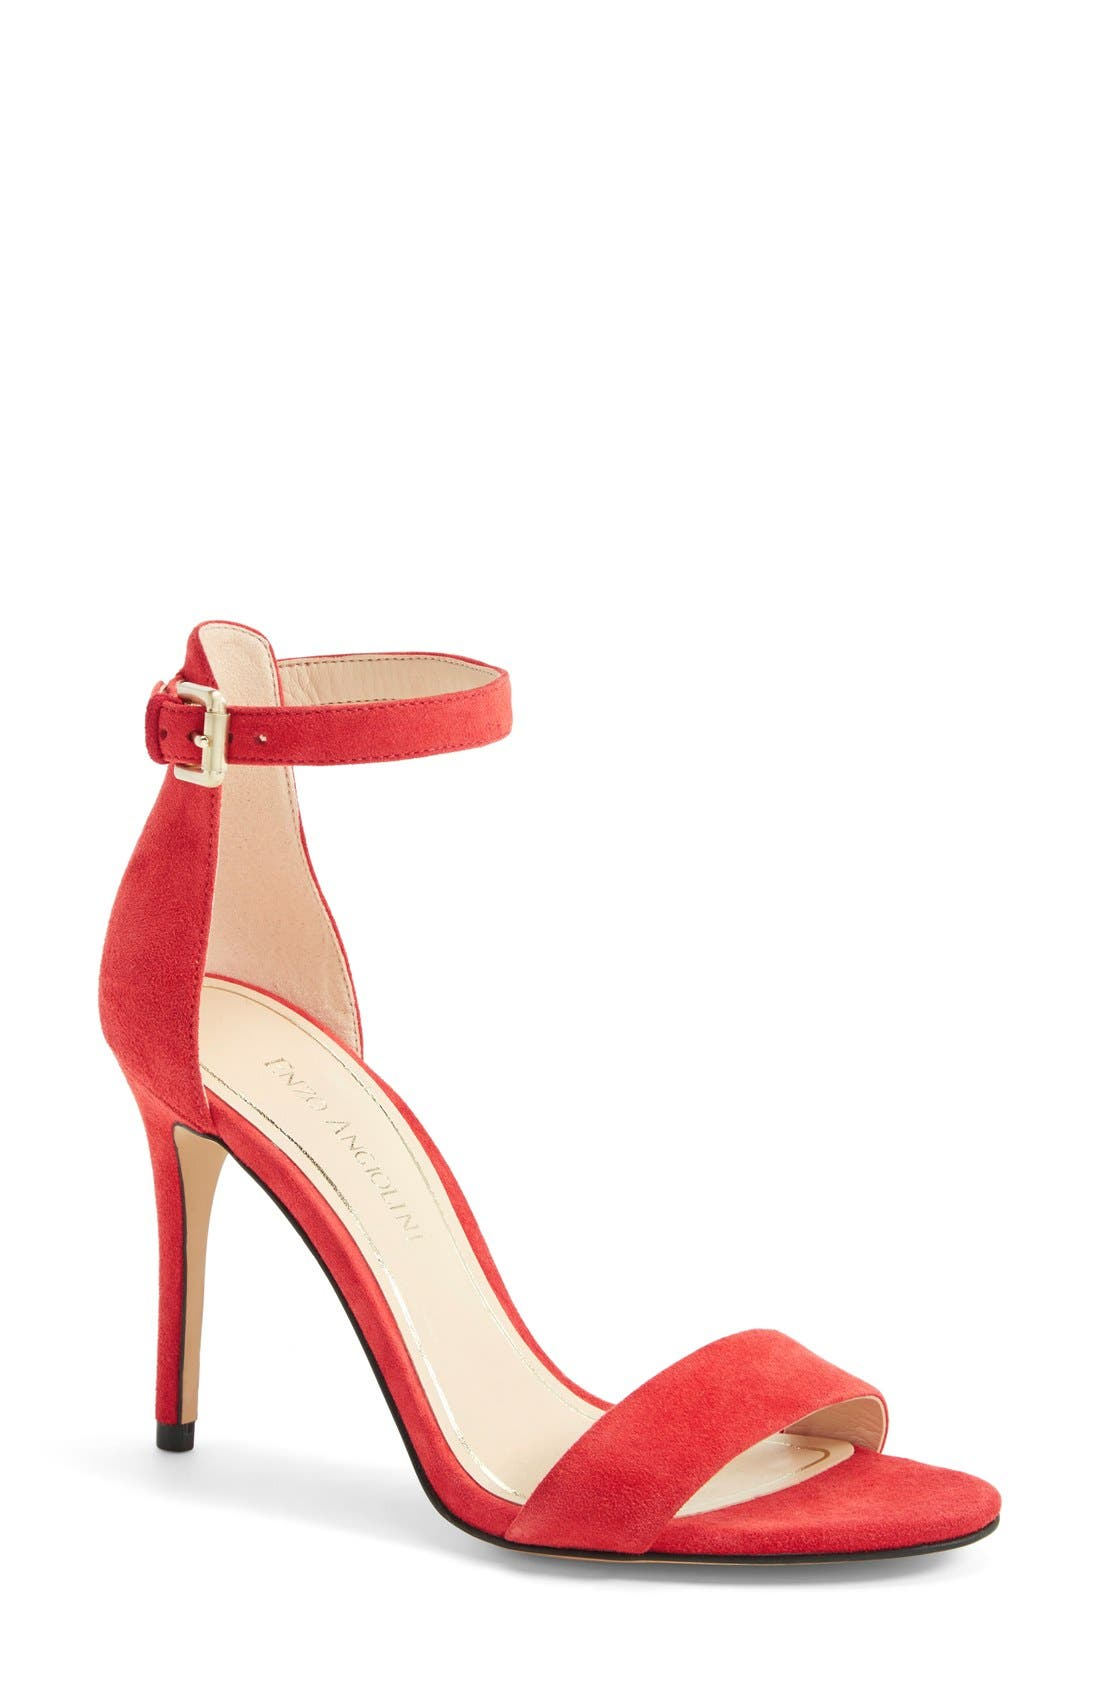 Alternate Image 1 Selected - Enzo Angiolini 'Manna' Ankle Strap Sandal (Women)